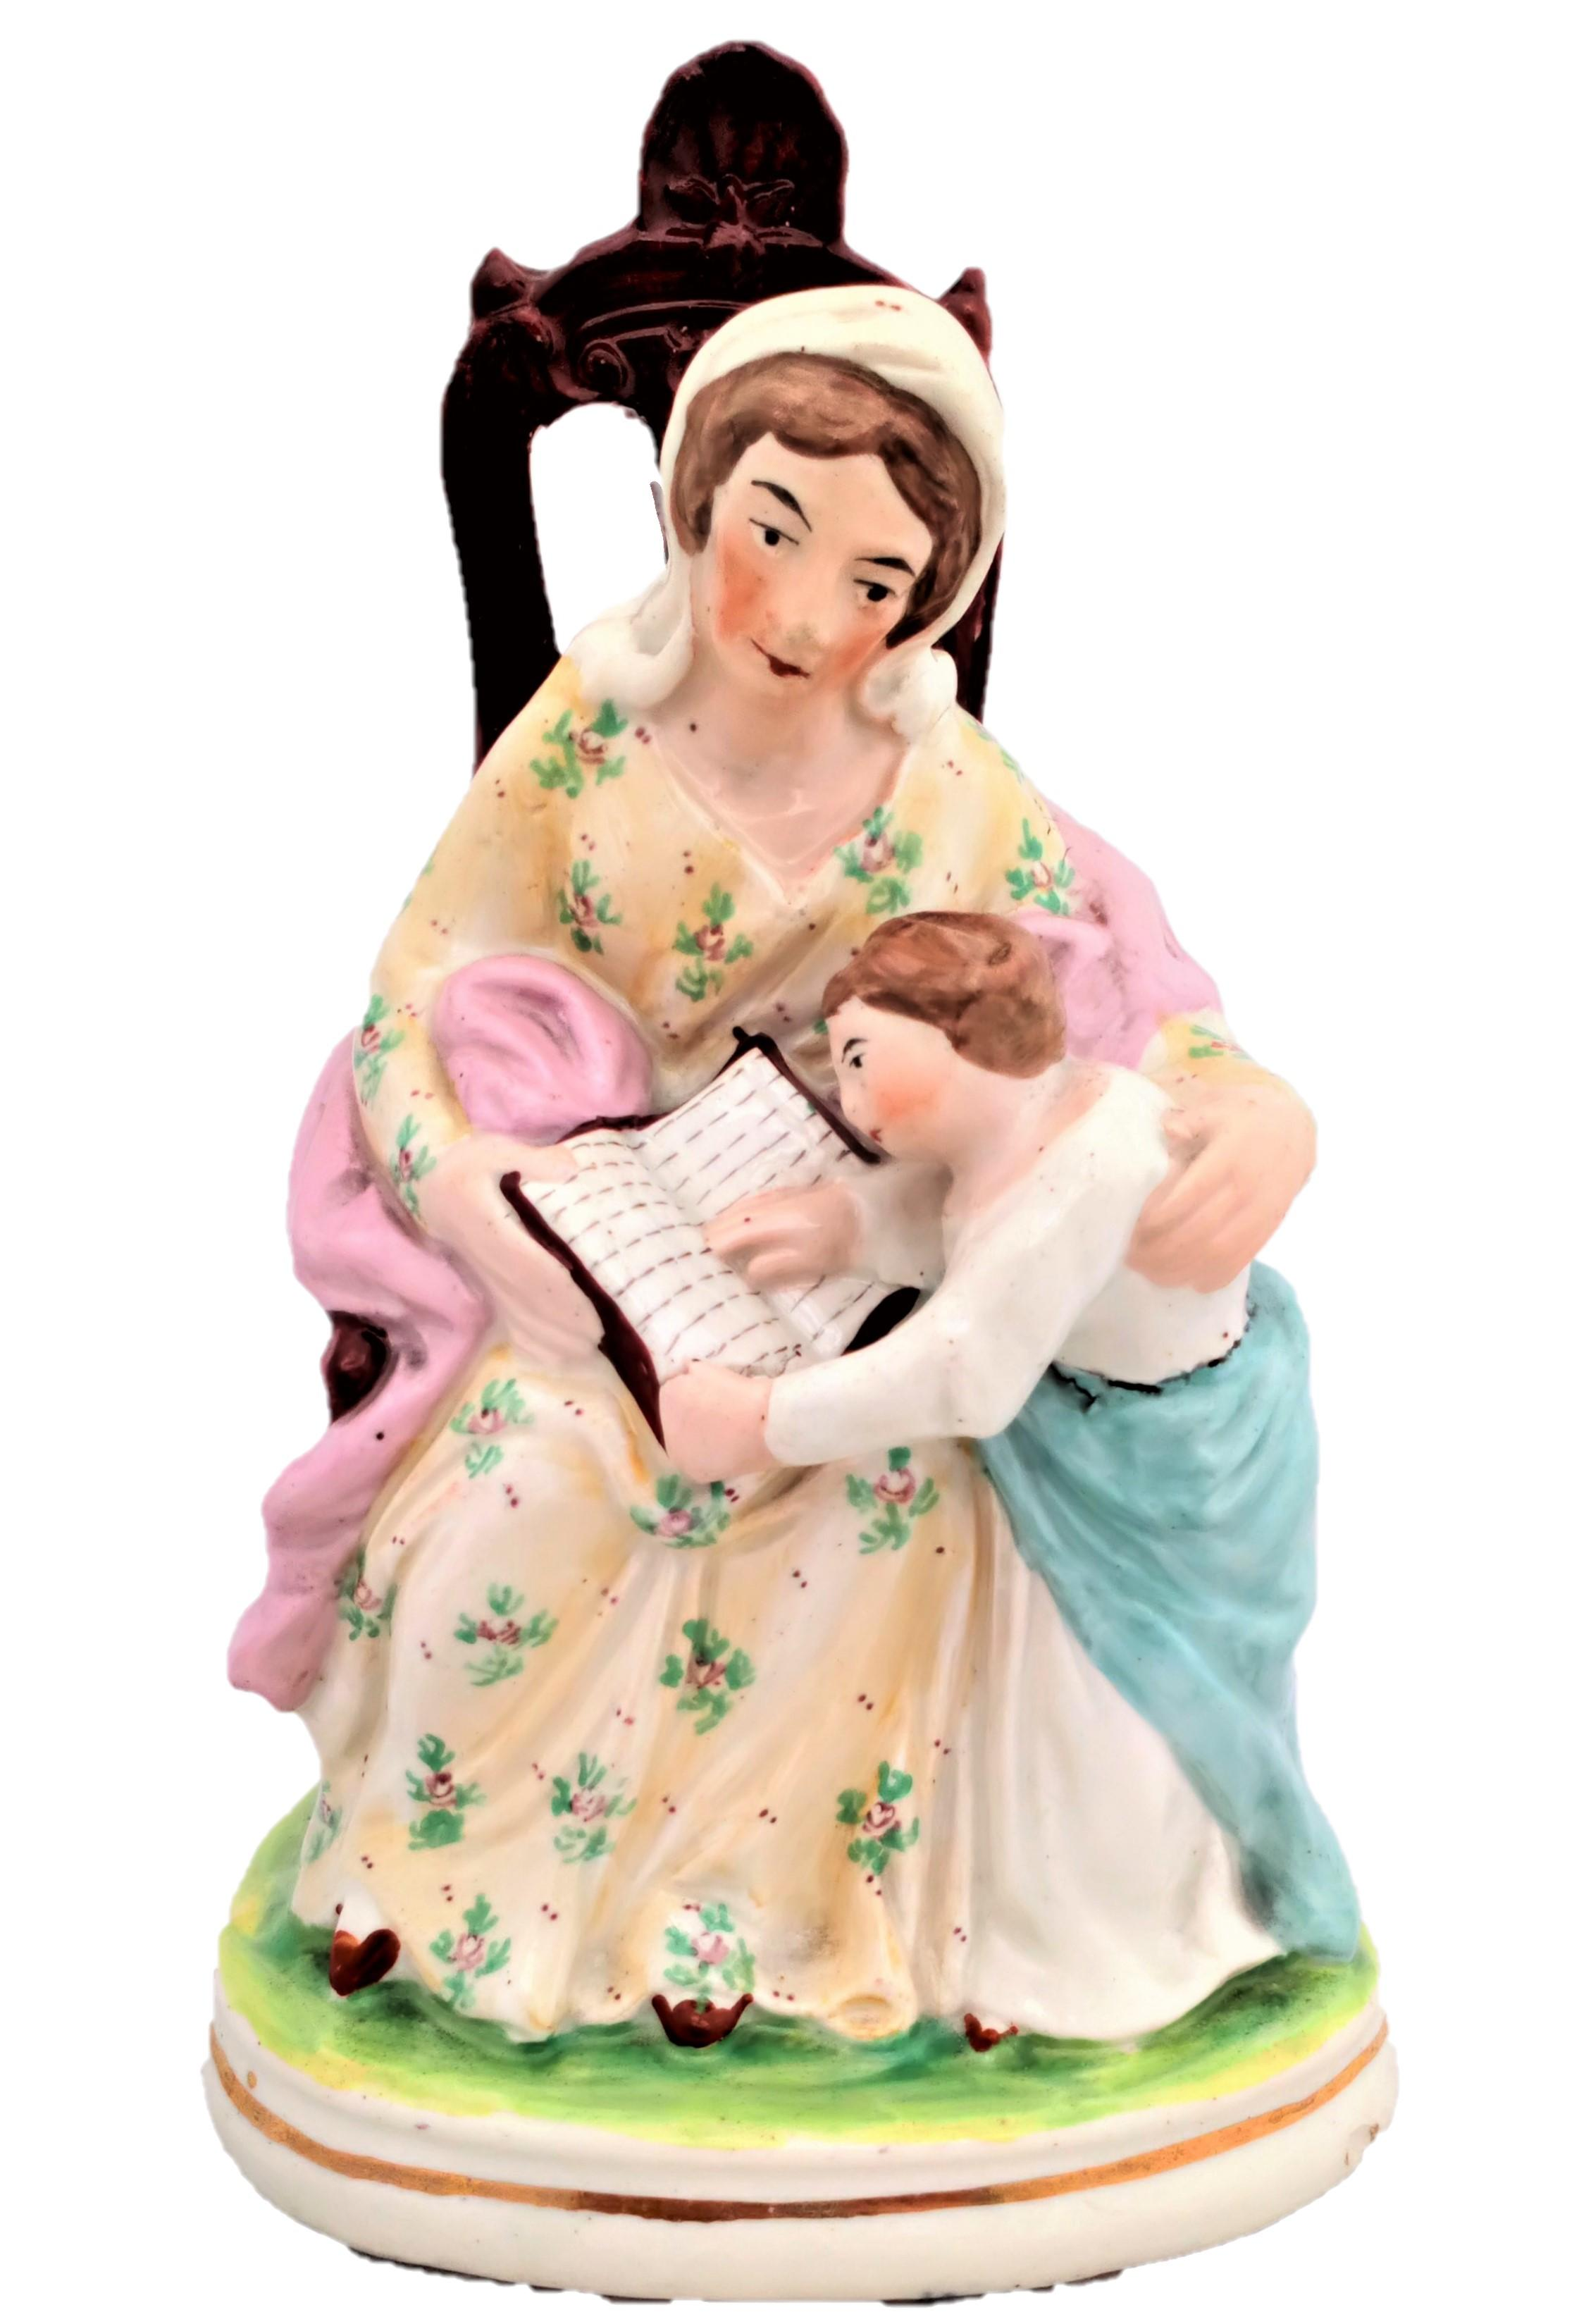 Antique Staffordshire Figurine The seated Prudent Mother and Child Reading circa 1850